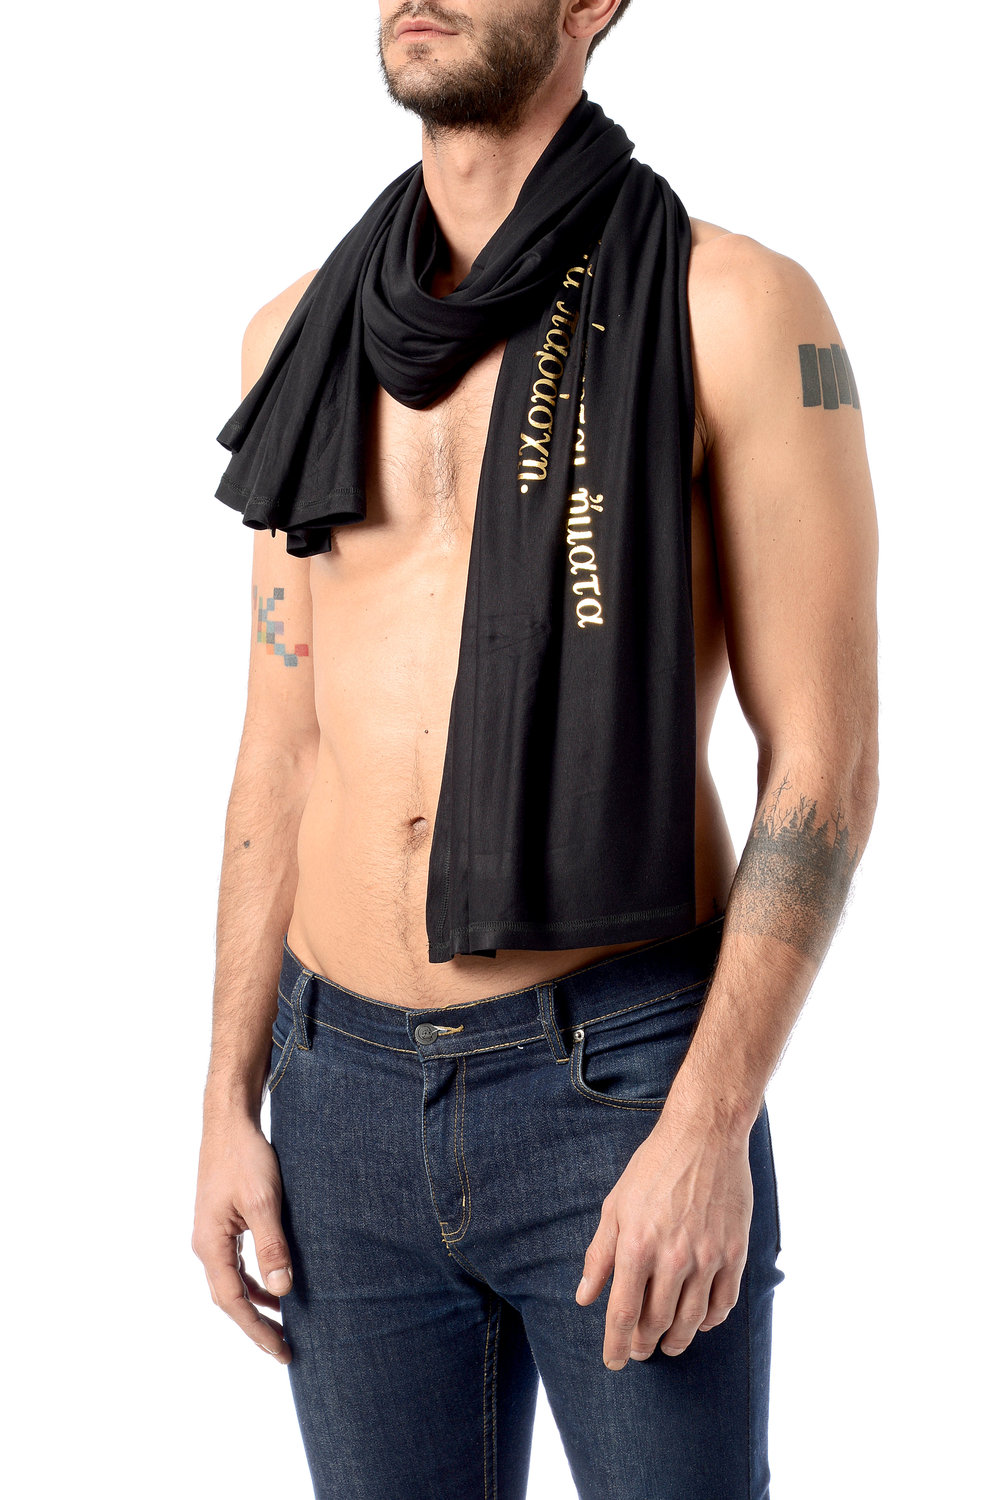 hospitality-phrase-pareo-as-scarf-on-men's-look-golden-foil-on-black-viscose-side.jpg